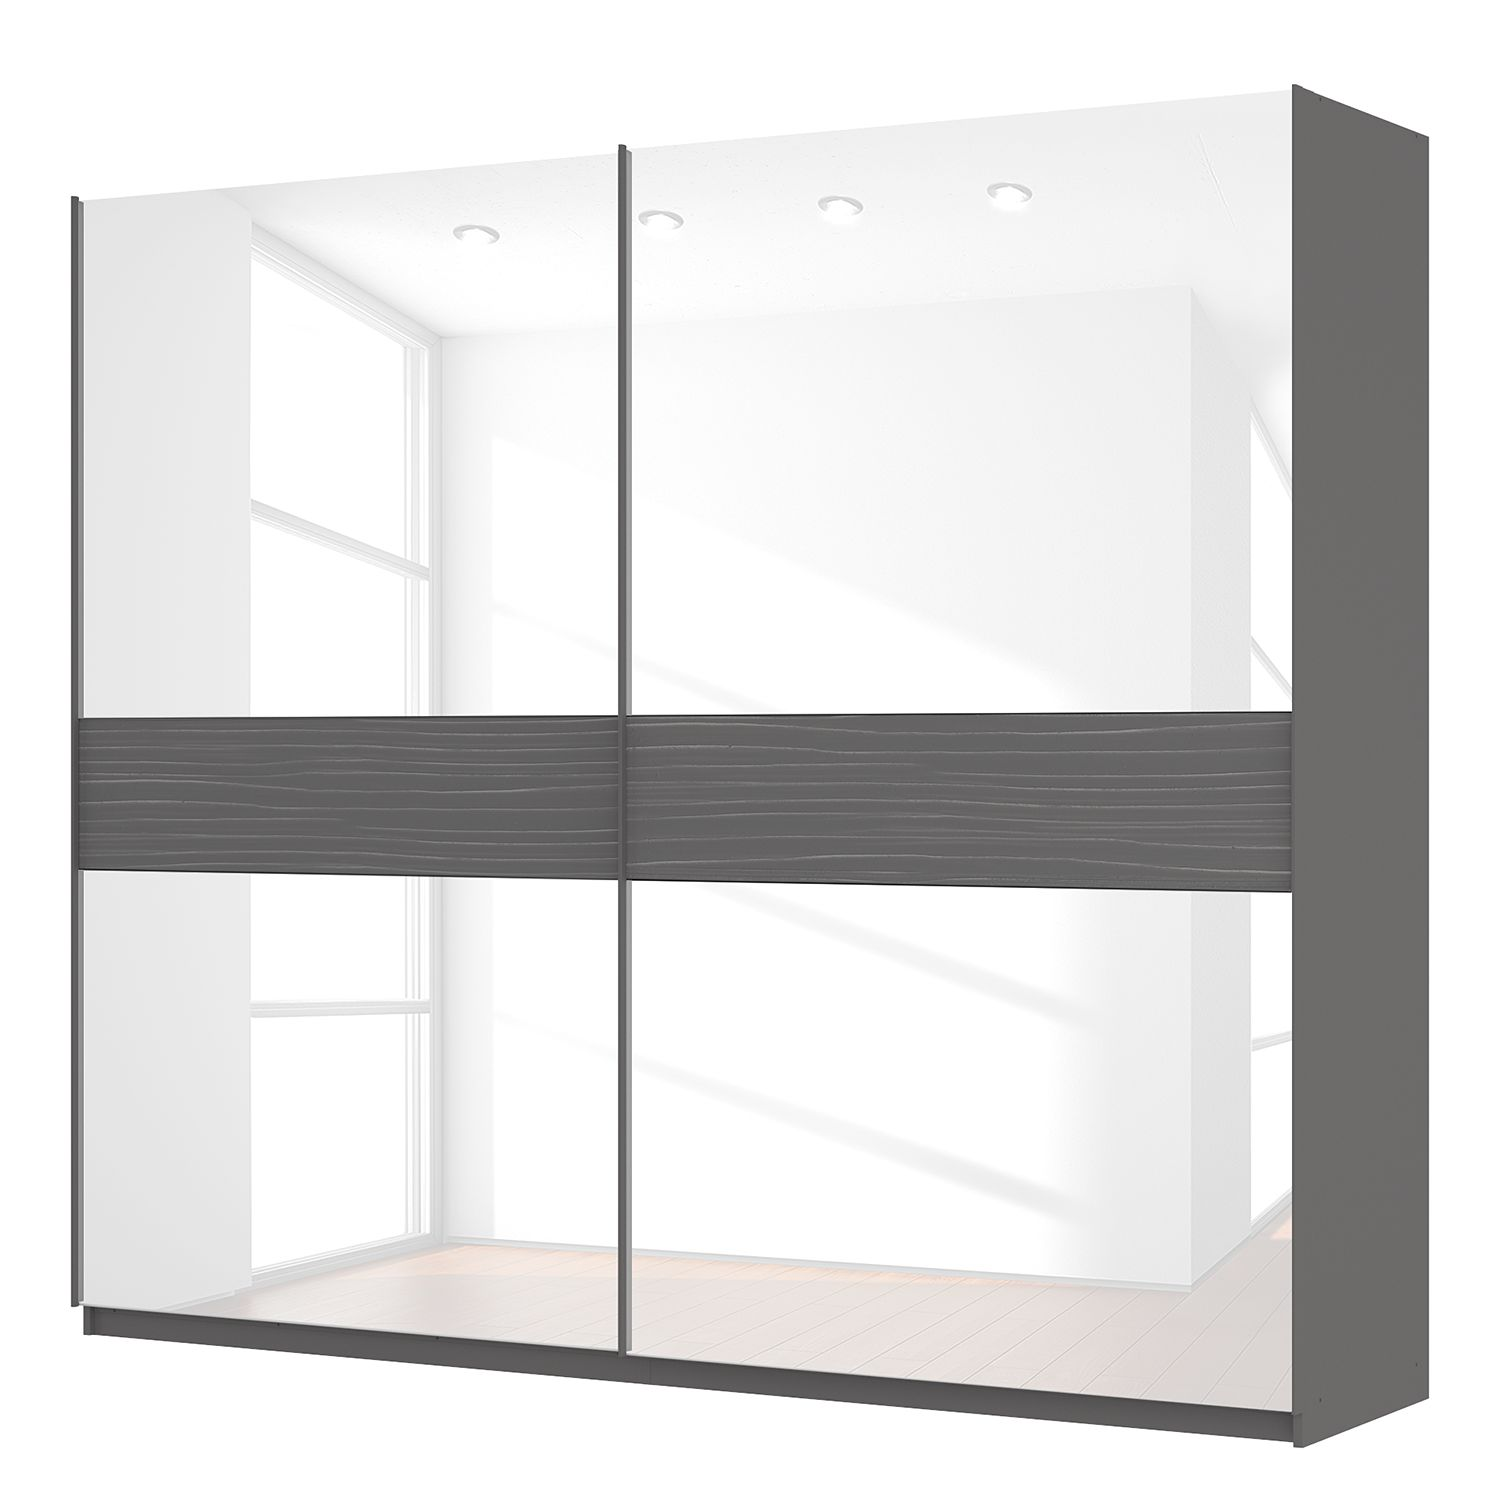 schwebet renschrank sk p graphit glas wei 270 cm 2. Black Bedroom Furniture Sets. Home Design Ideas